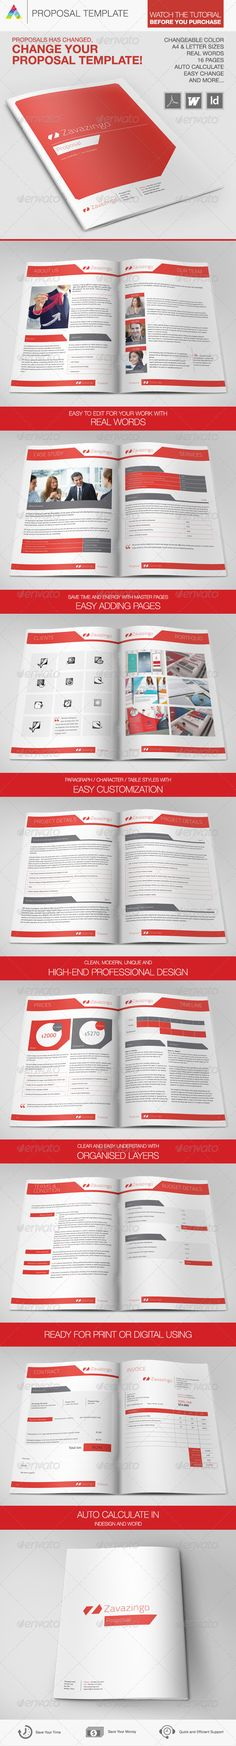 Project Proposal Template (Updated) Proposal templates, Project - professional proposal templates